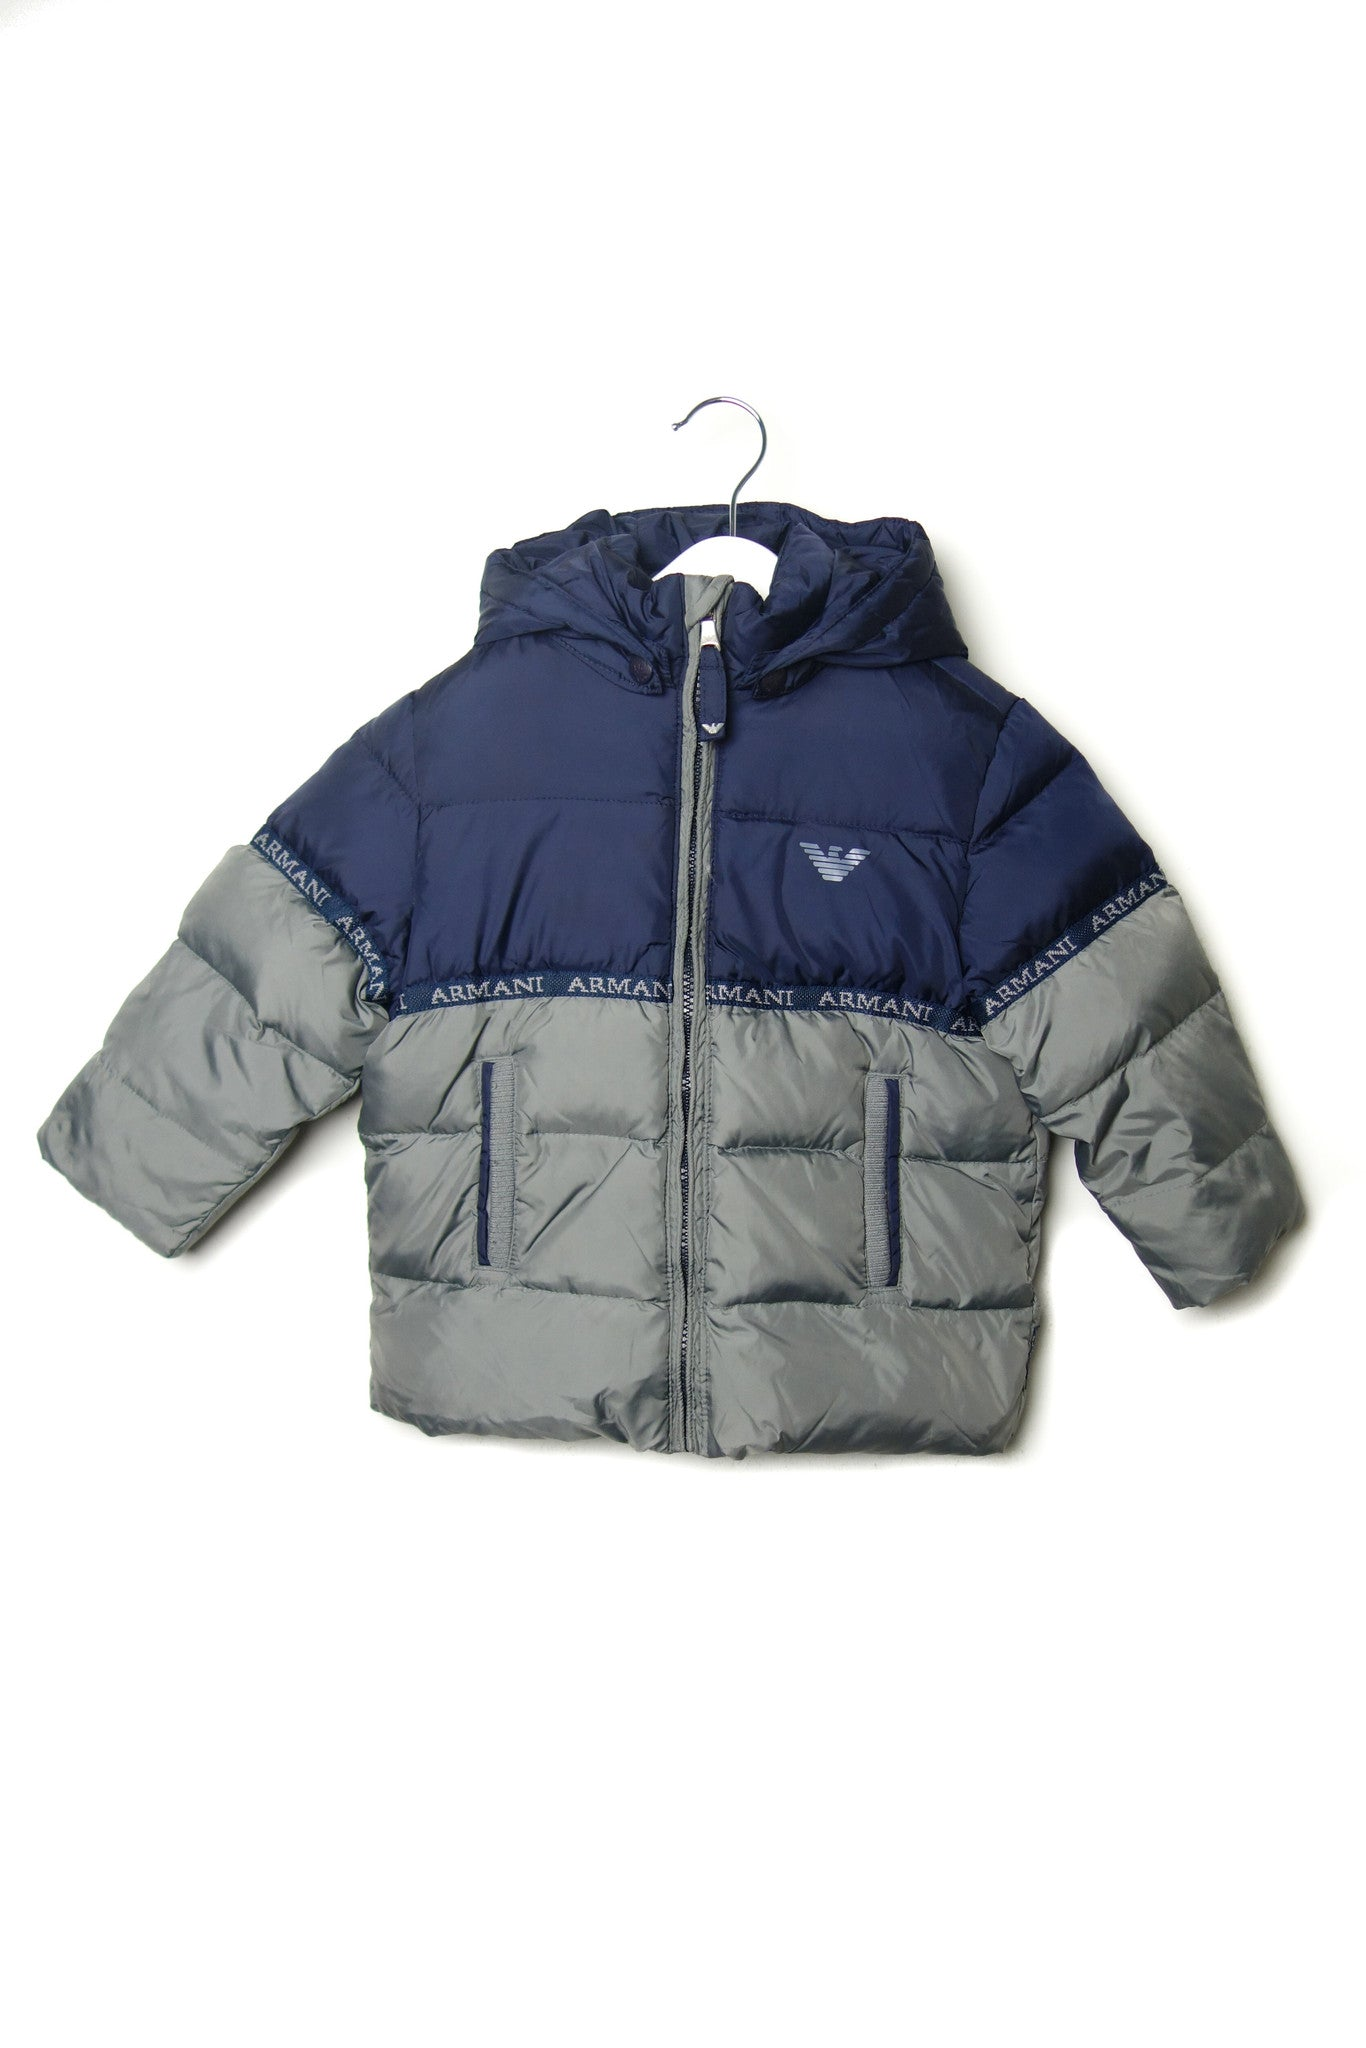 10001854BB Armani Kids~Puffer Jacket 2T at Retykle